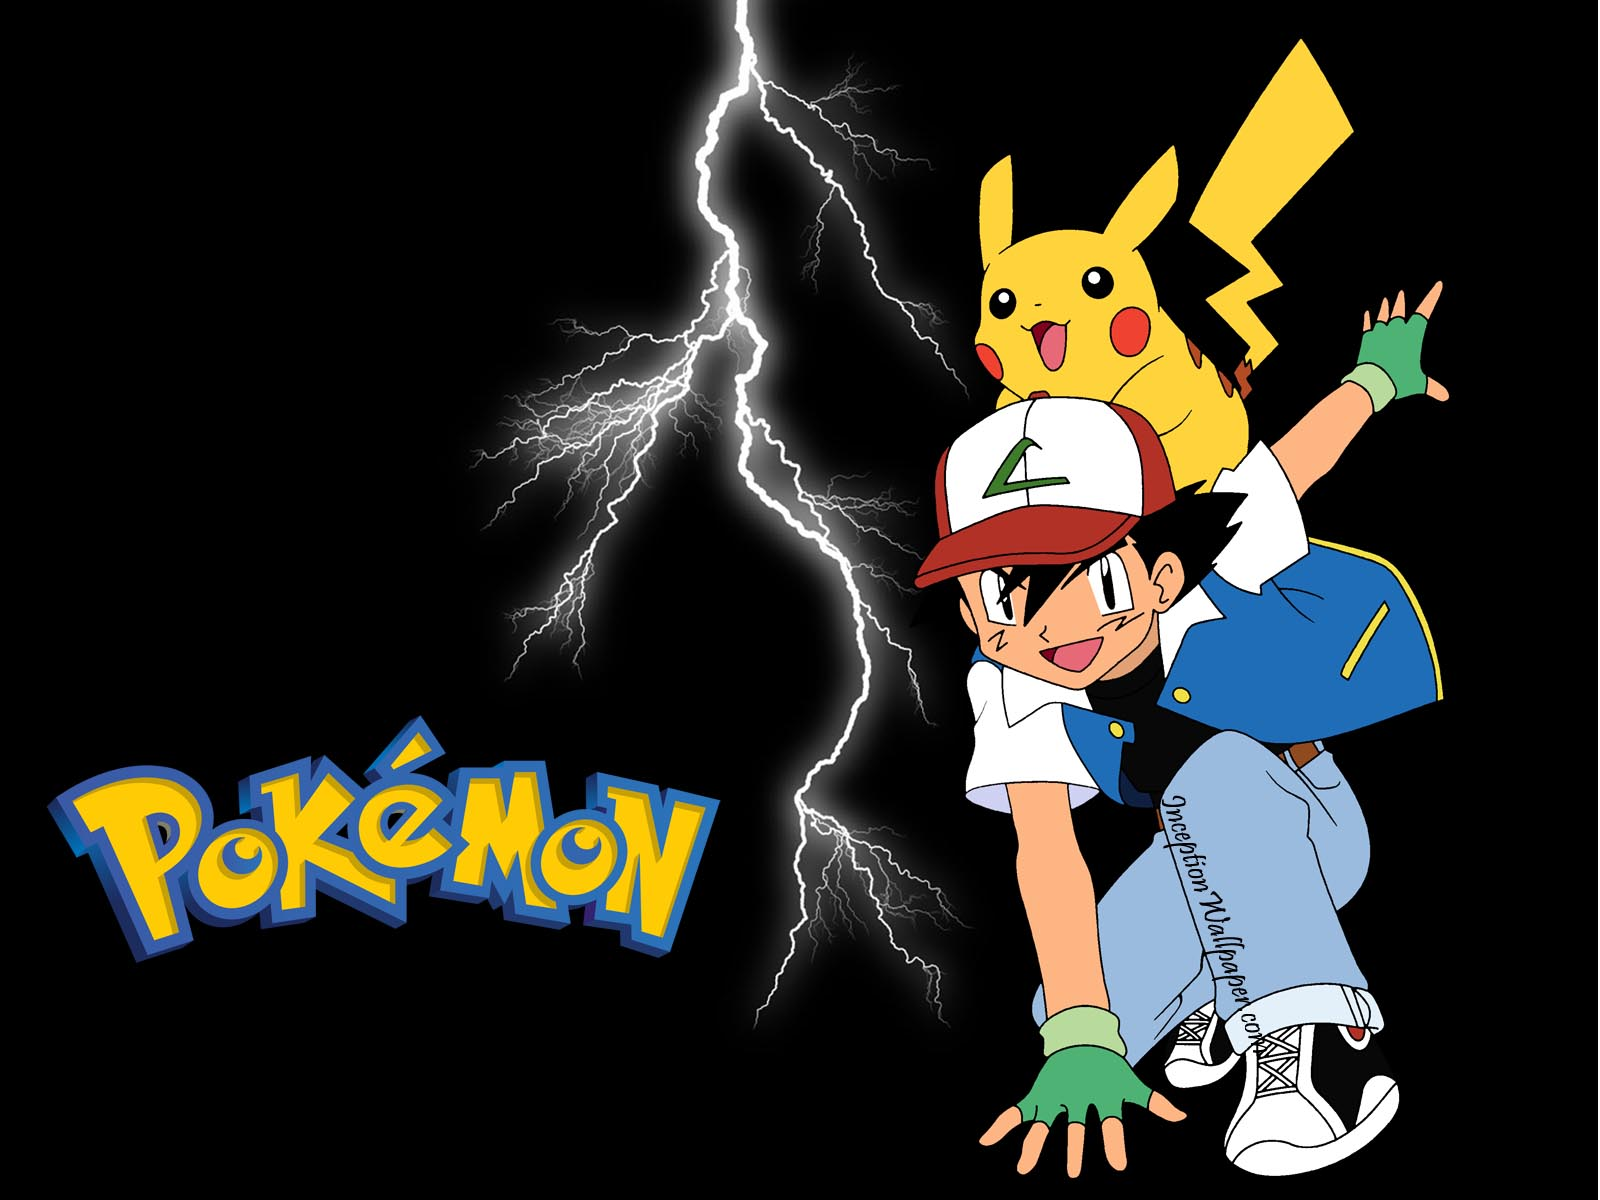 Pokemon Wallpaper Pikachu And Ash